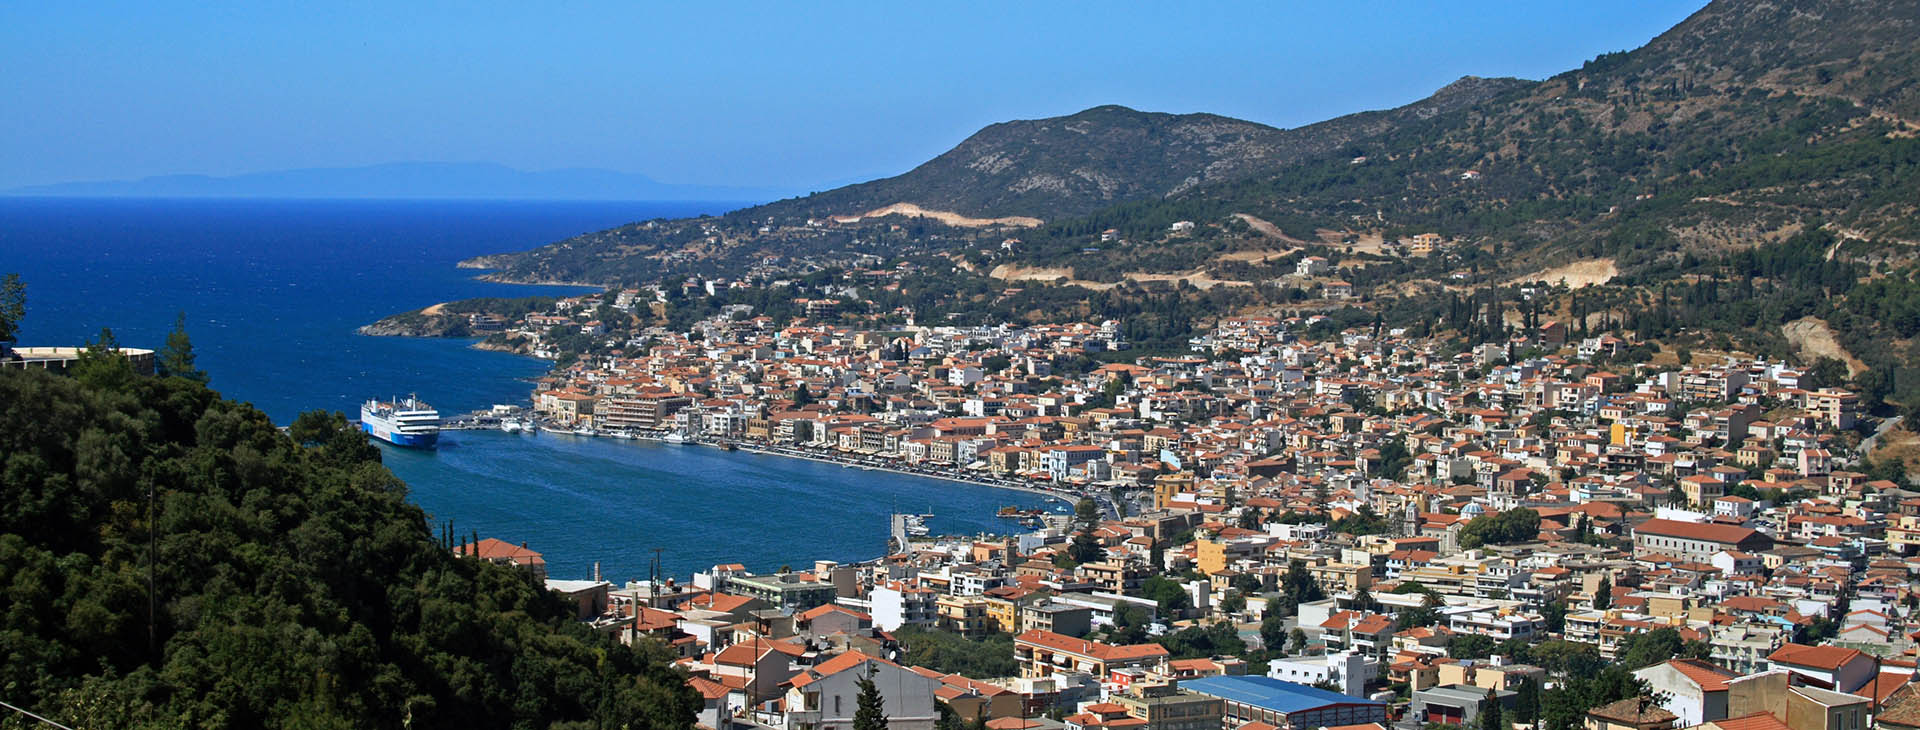 Vathy, capital of Samos island